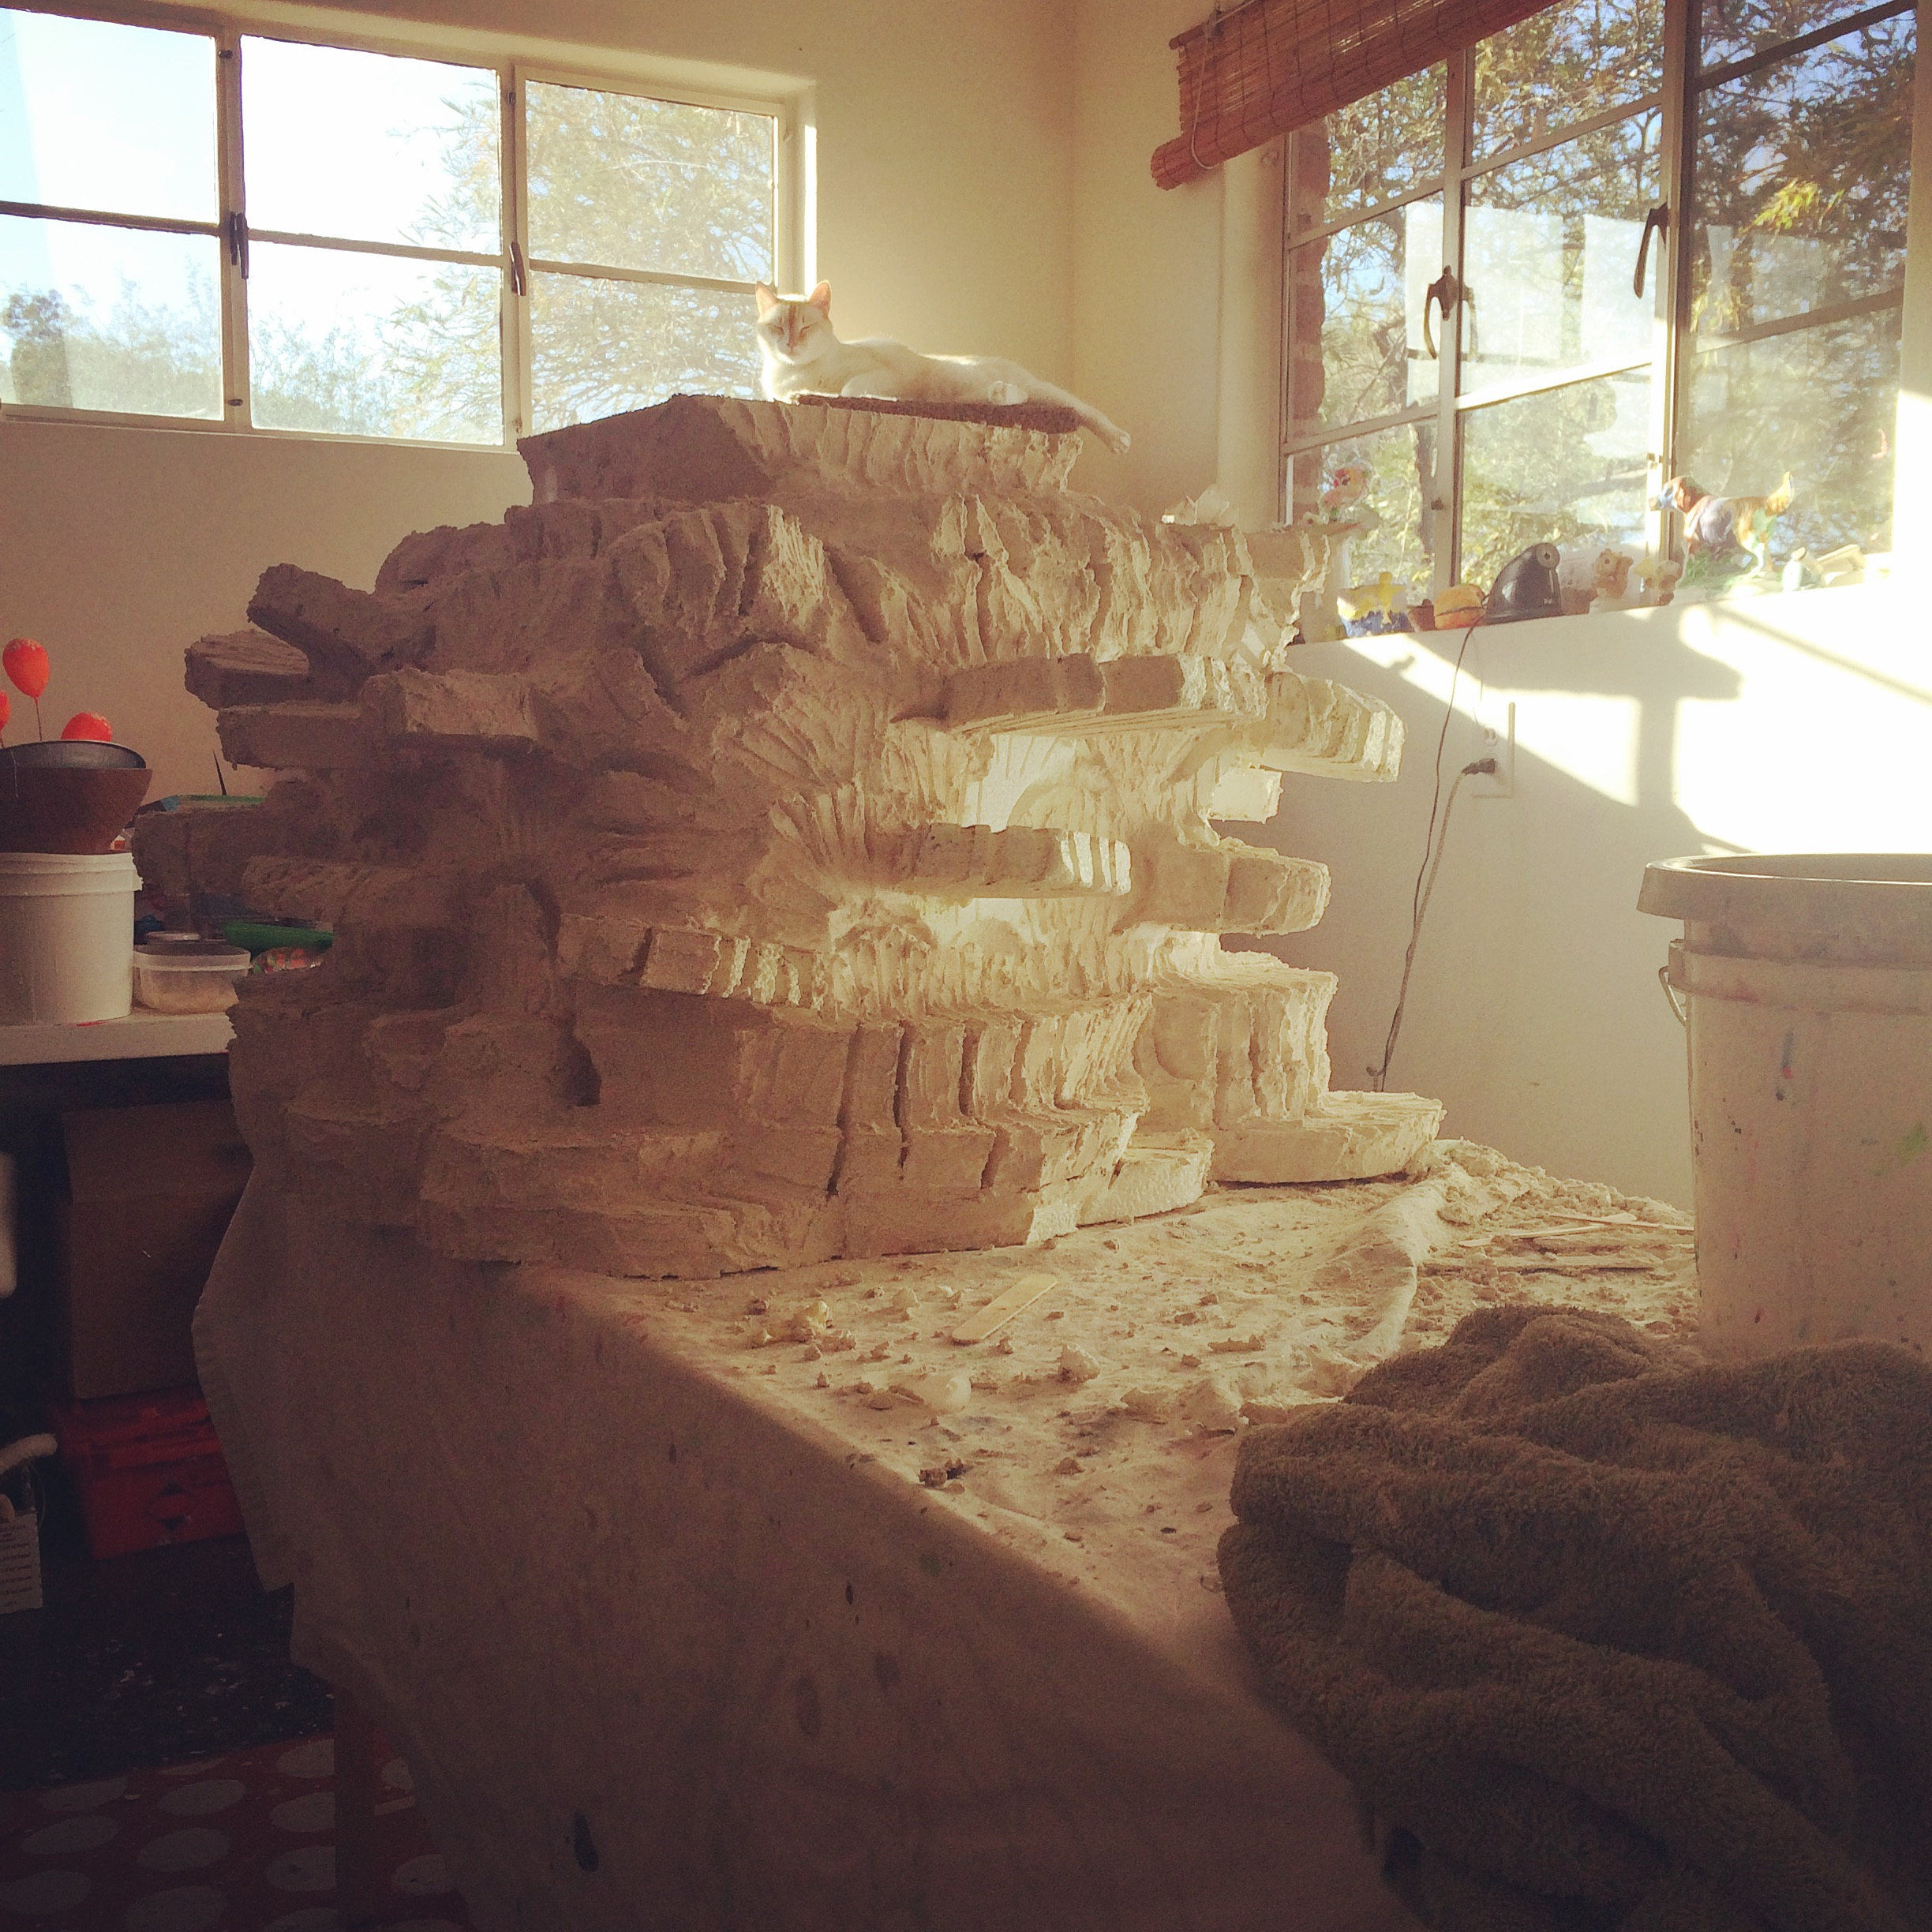 Part of a super coral sculpture in the studio with Moonpie the cat.